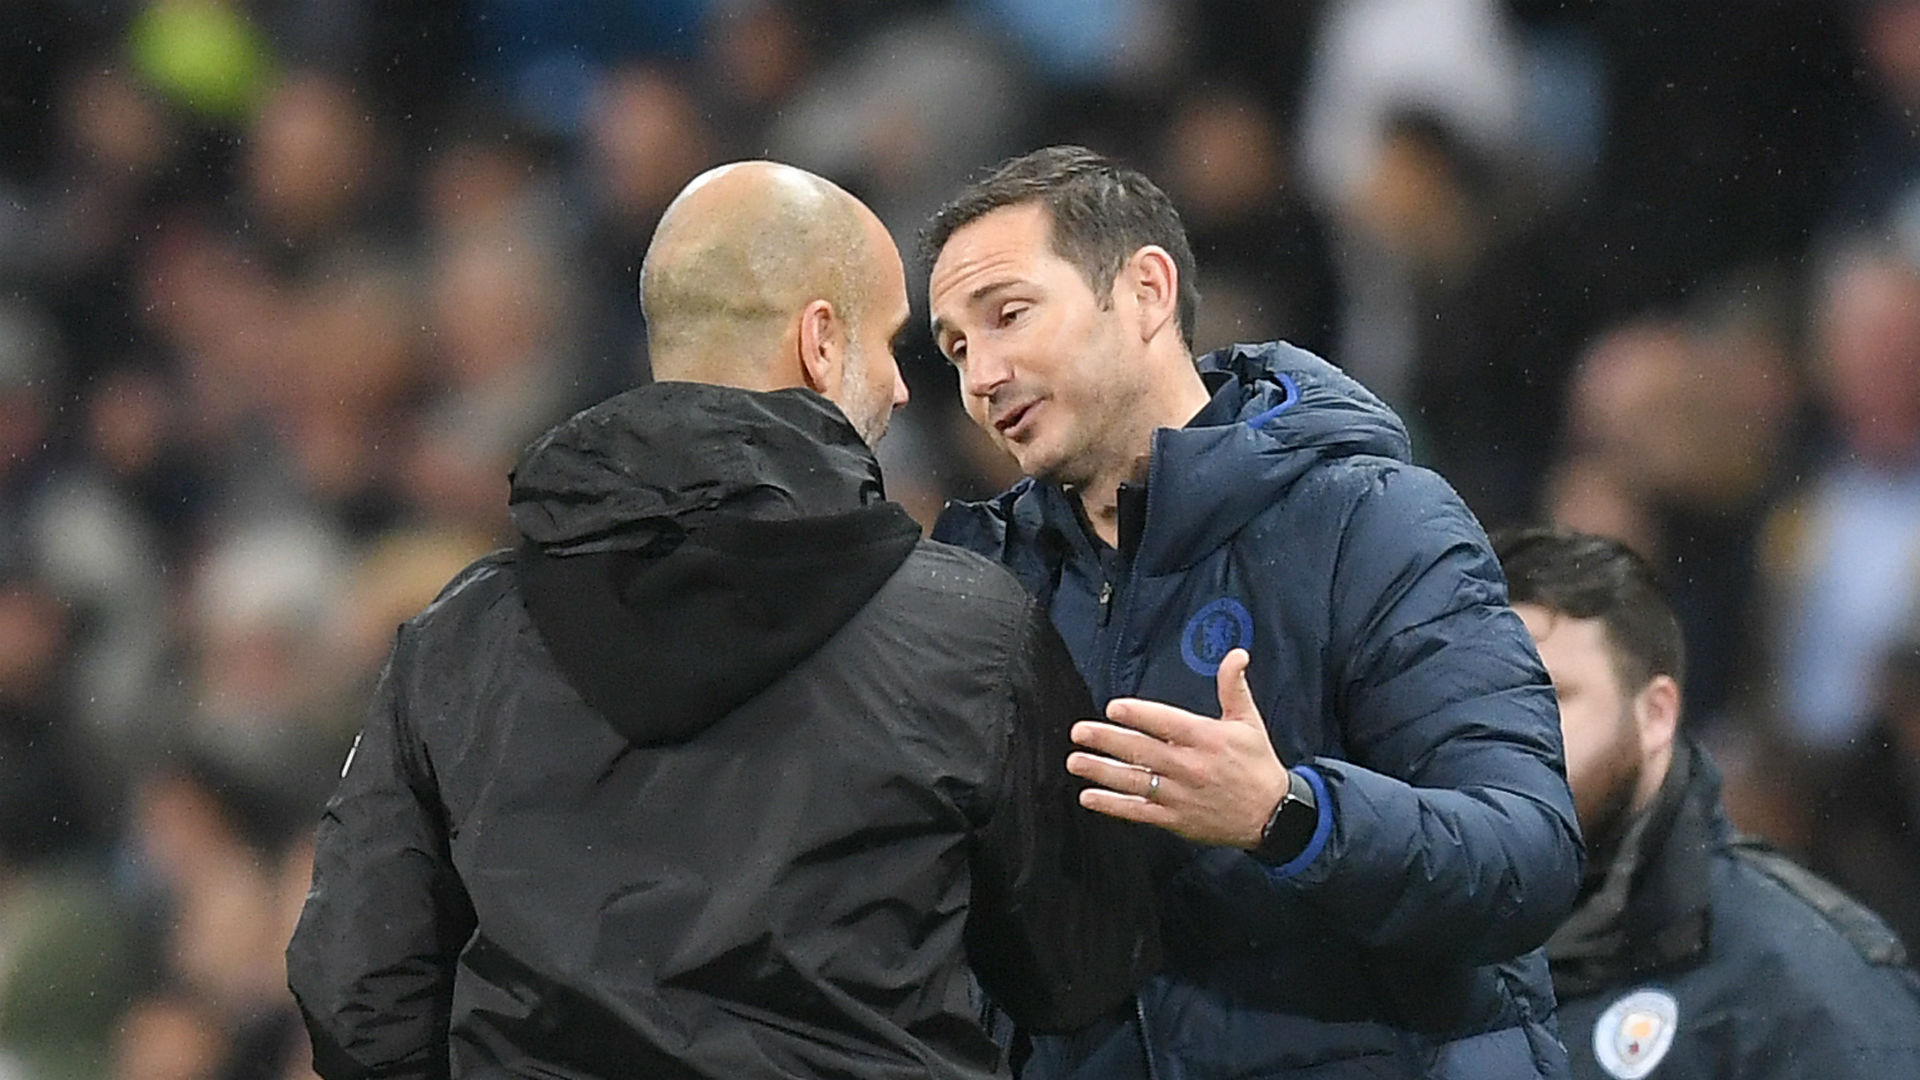 We're coming to close the gap - Lampard buoyed by Chelsea display in Man City defeat